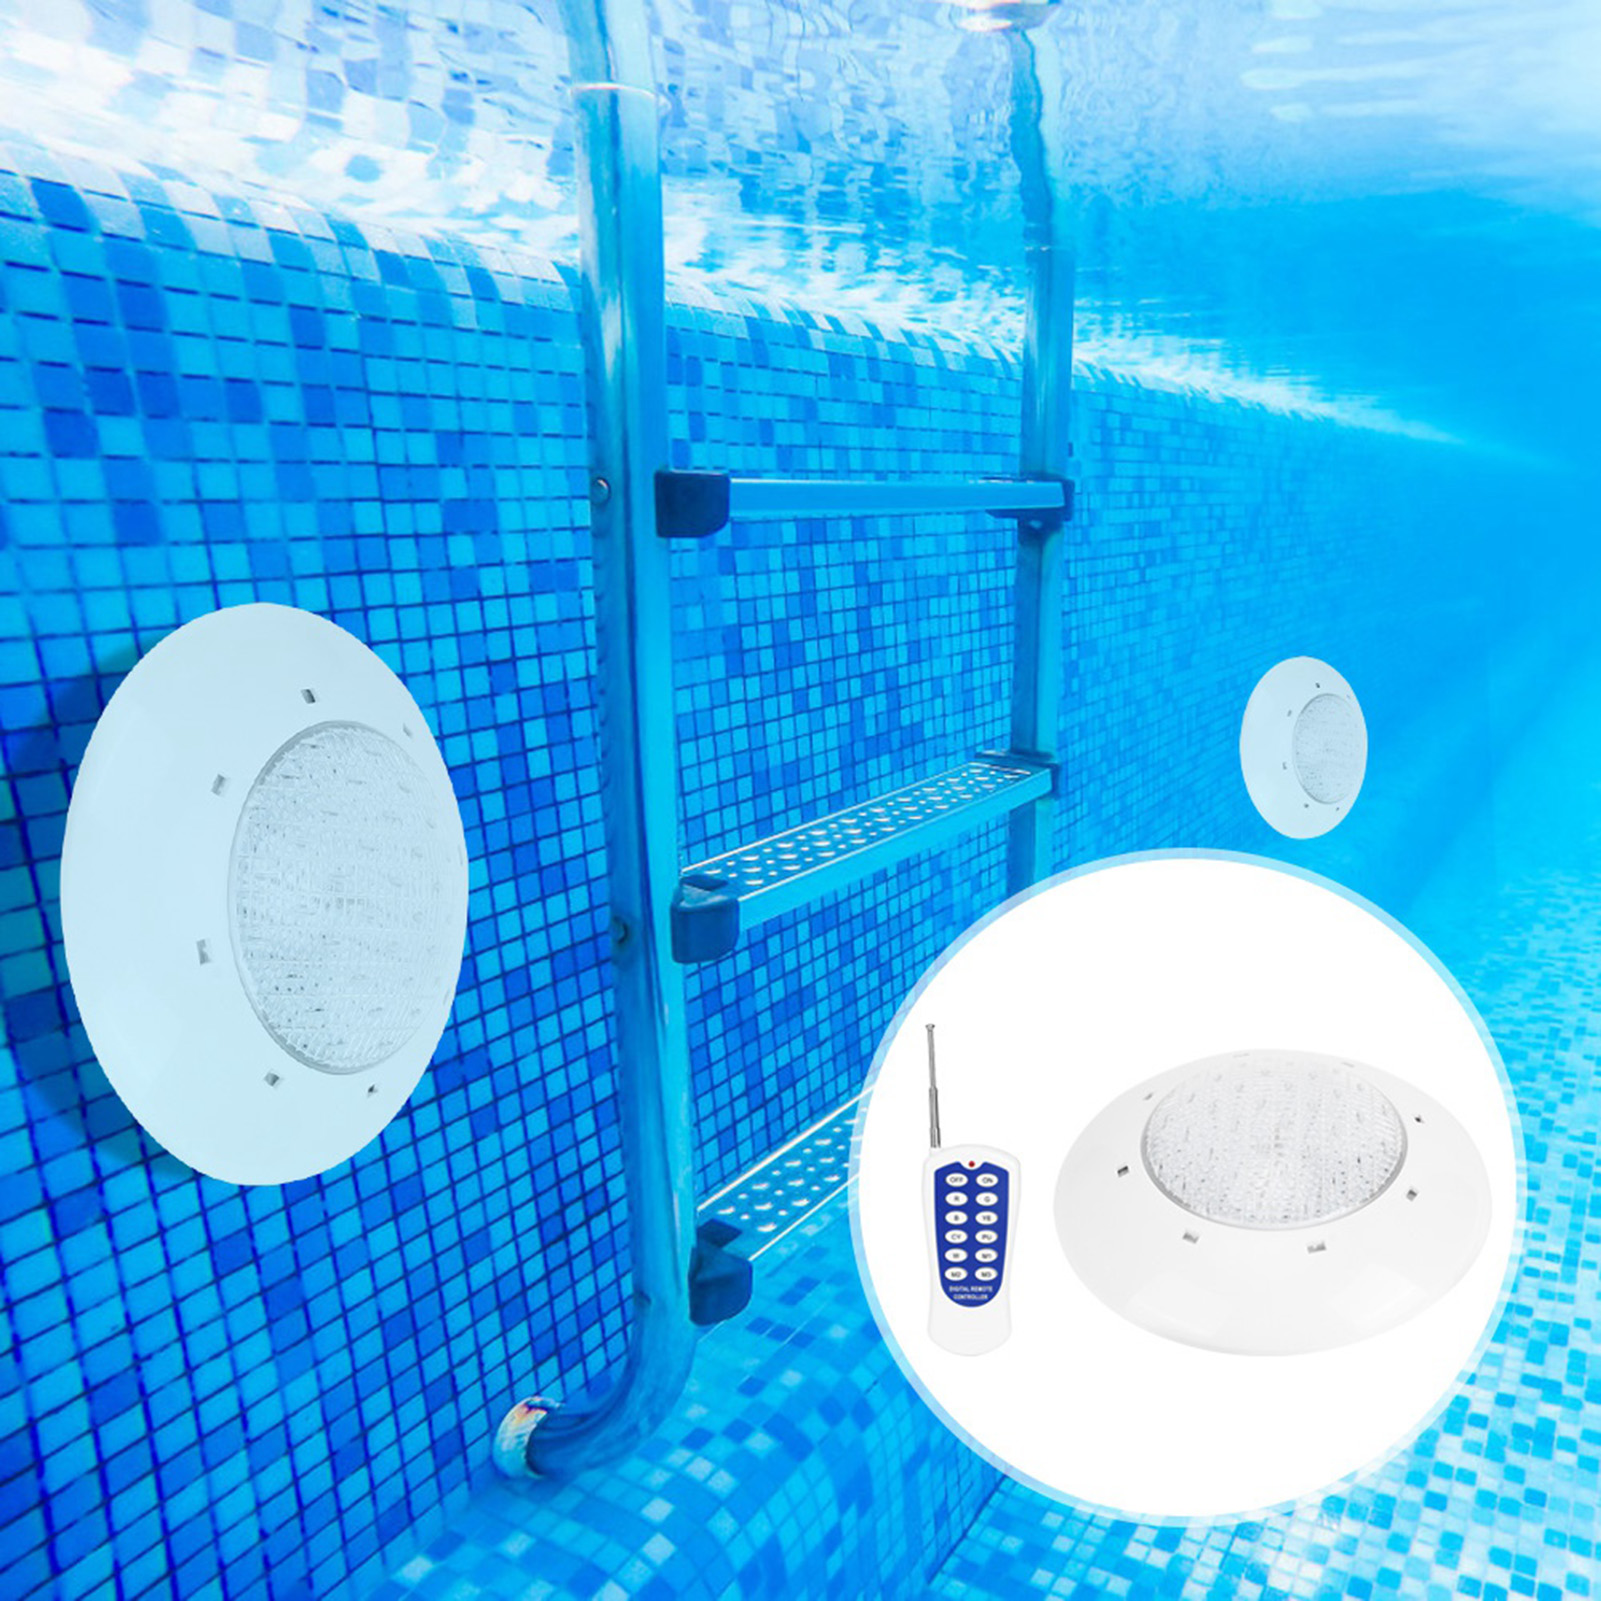 thumbnail 47 - Swimming Pool Wall Light Colorful Remote Control Underwater Lights AC 12V 18-45W